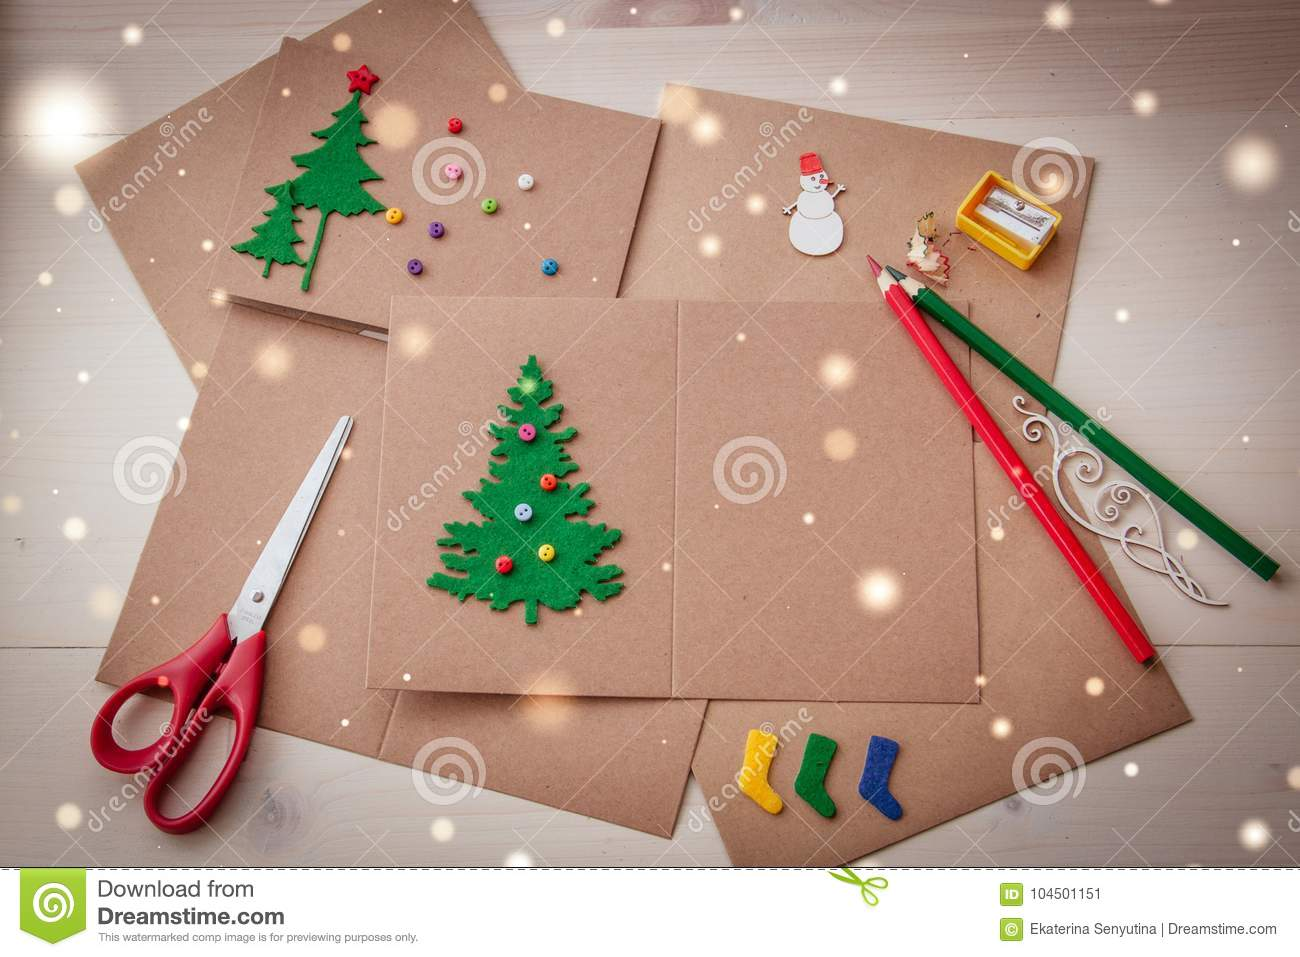 signing handmade christmas cards felt scissors buttons christmas tree scrapping